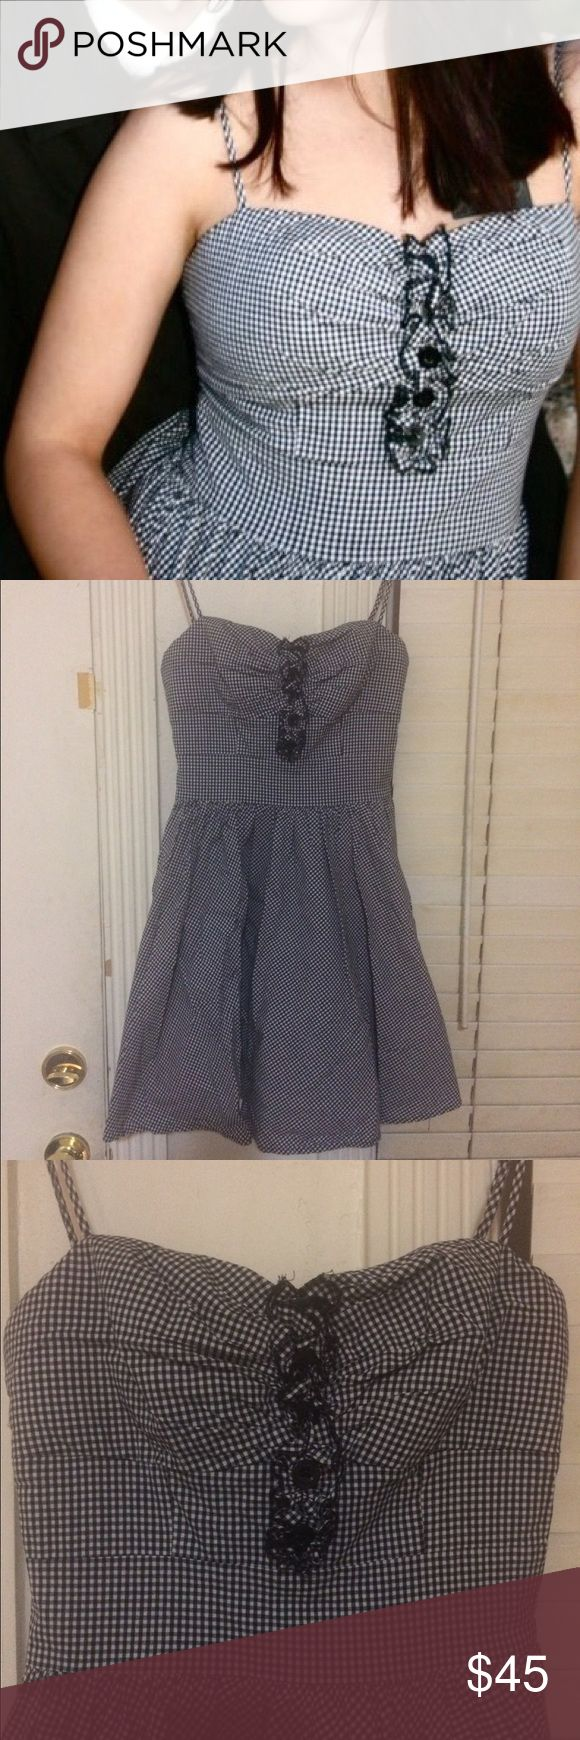 Bebe Gingham Pinup Retro Dress Absolutely gorgeous dress, great for dancing and twirling around! bebe Dresses Mini